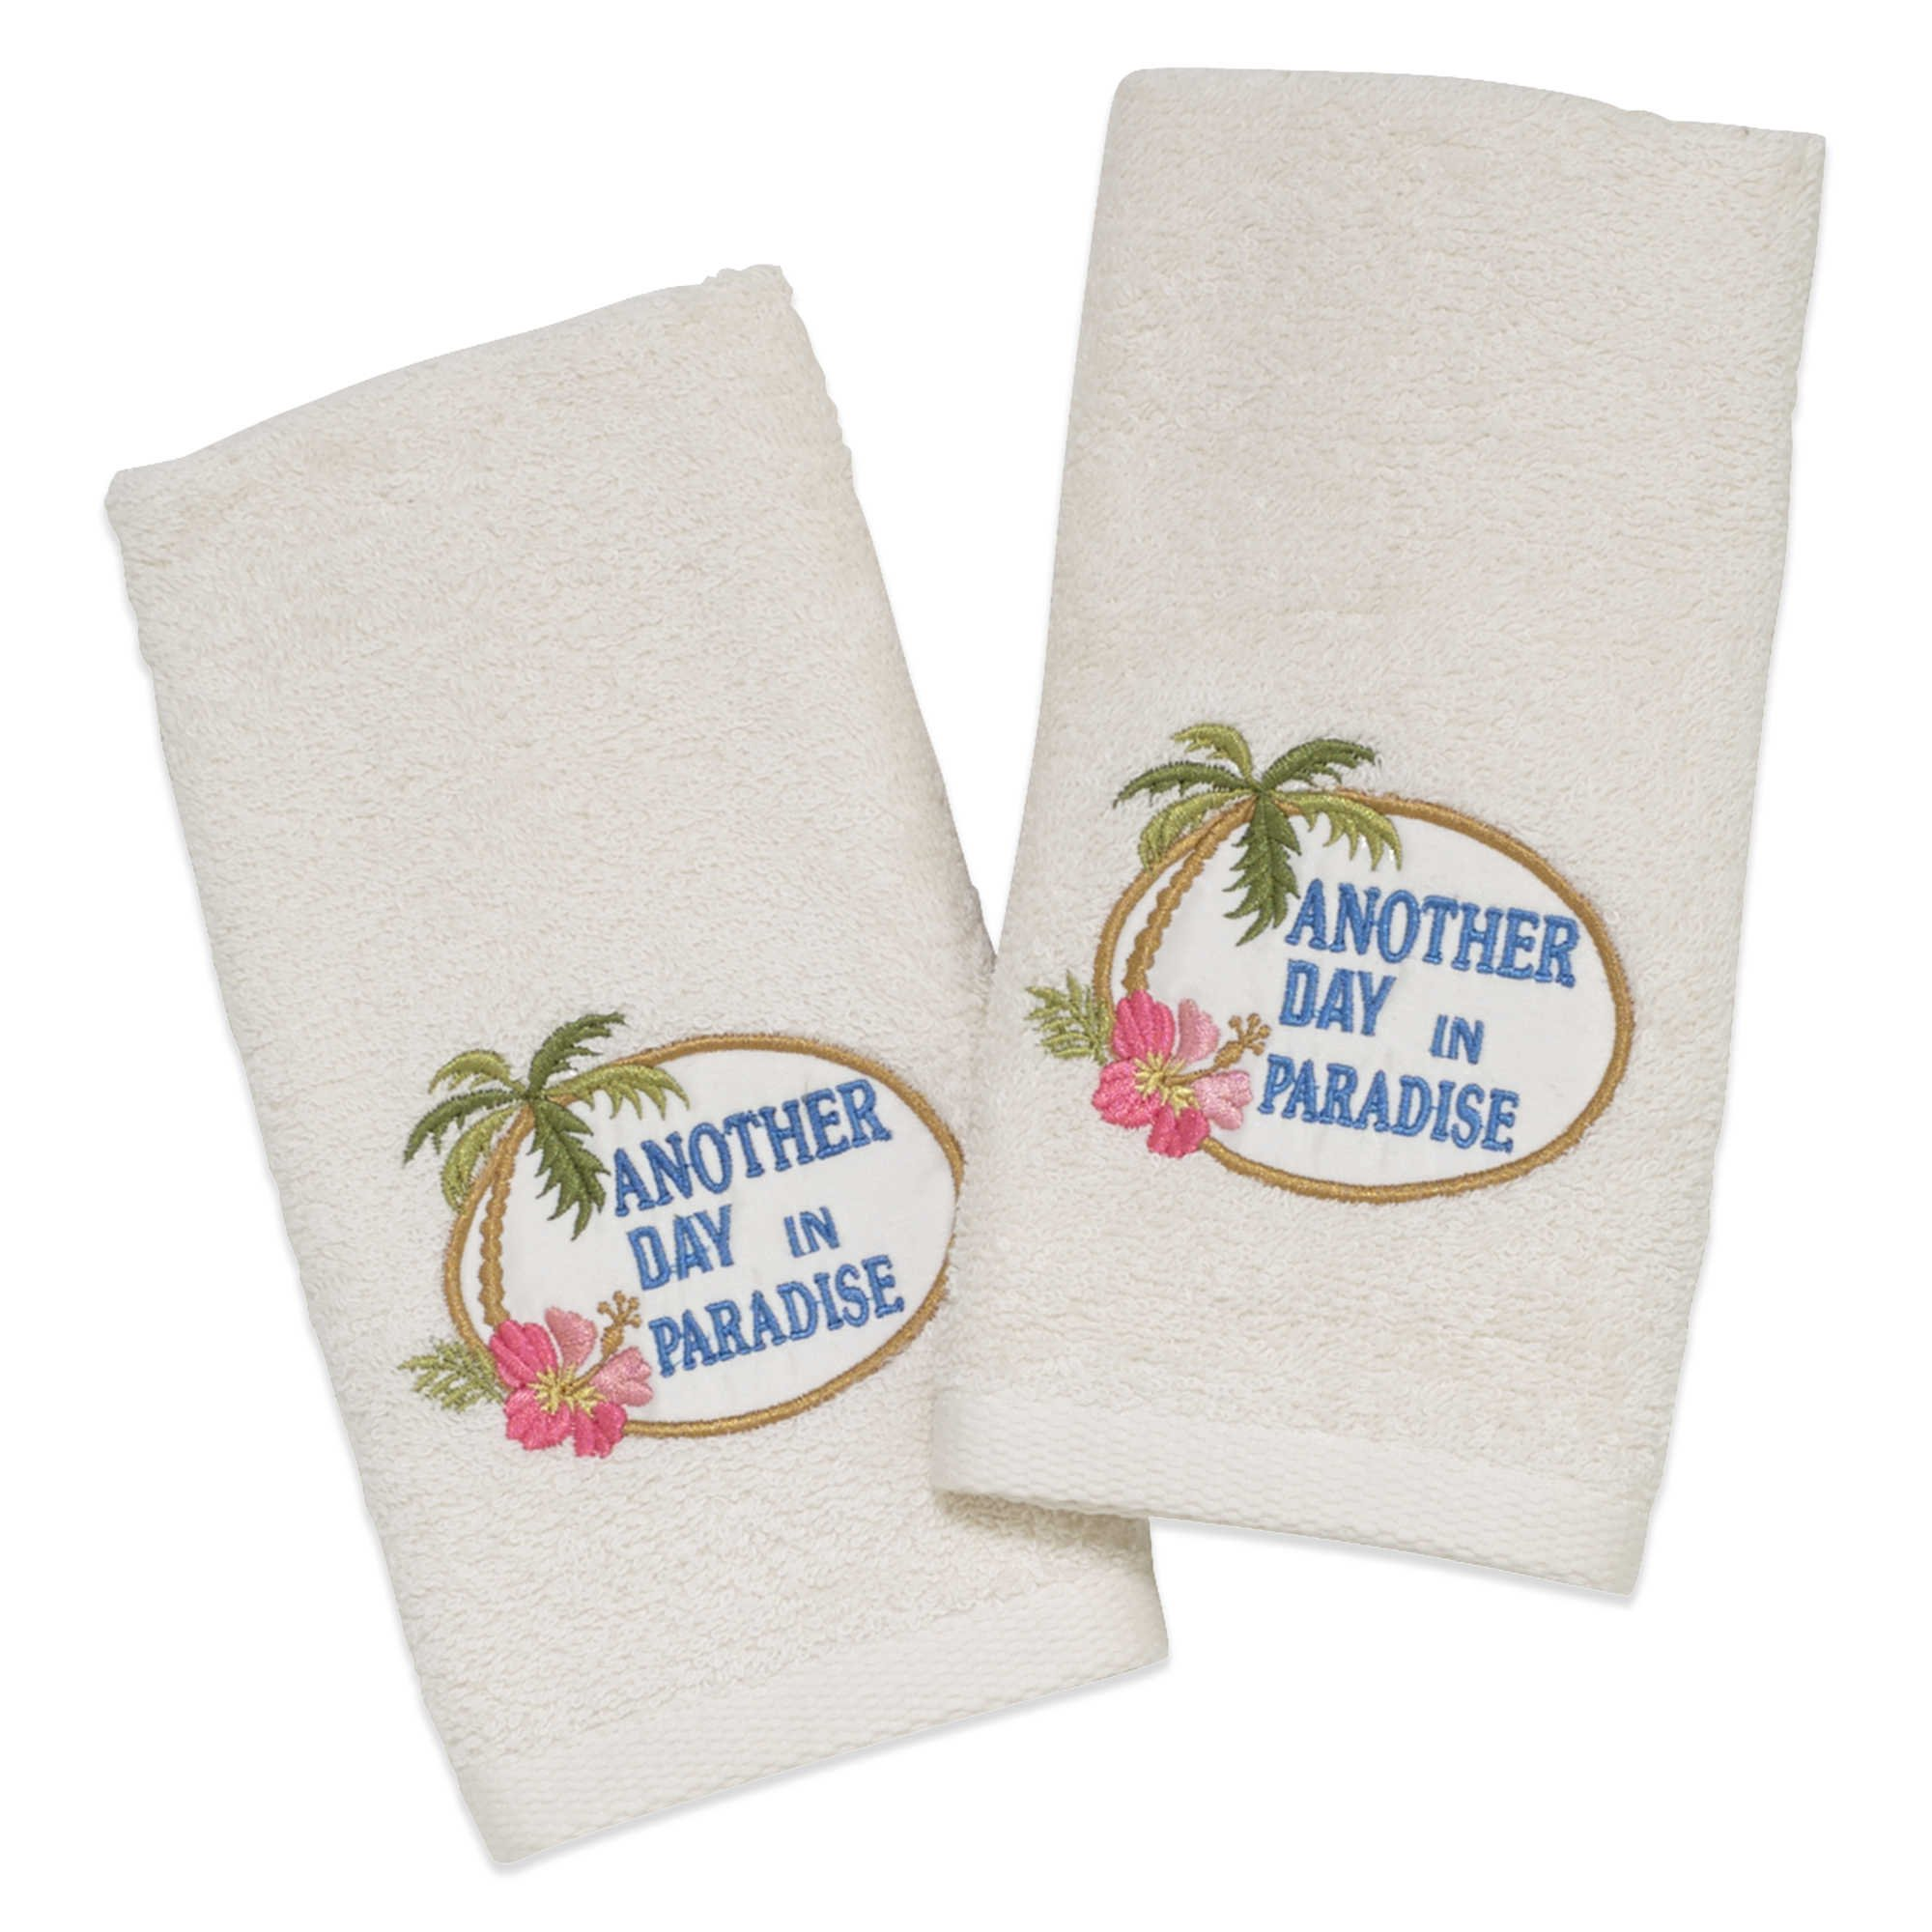 Avanti ''Another Day in Paradise'' Fingertip Towel in Ivory (Set of 2) by HometoDeals (Image #1)